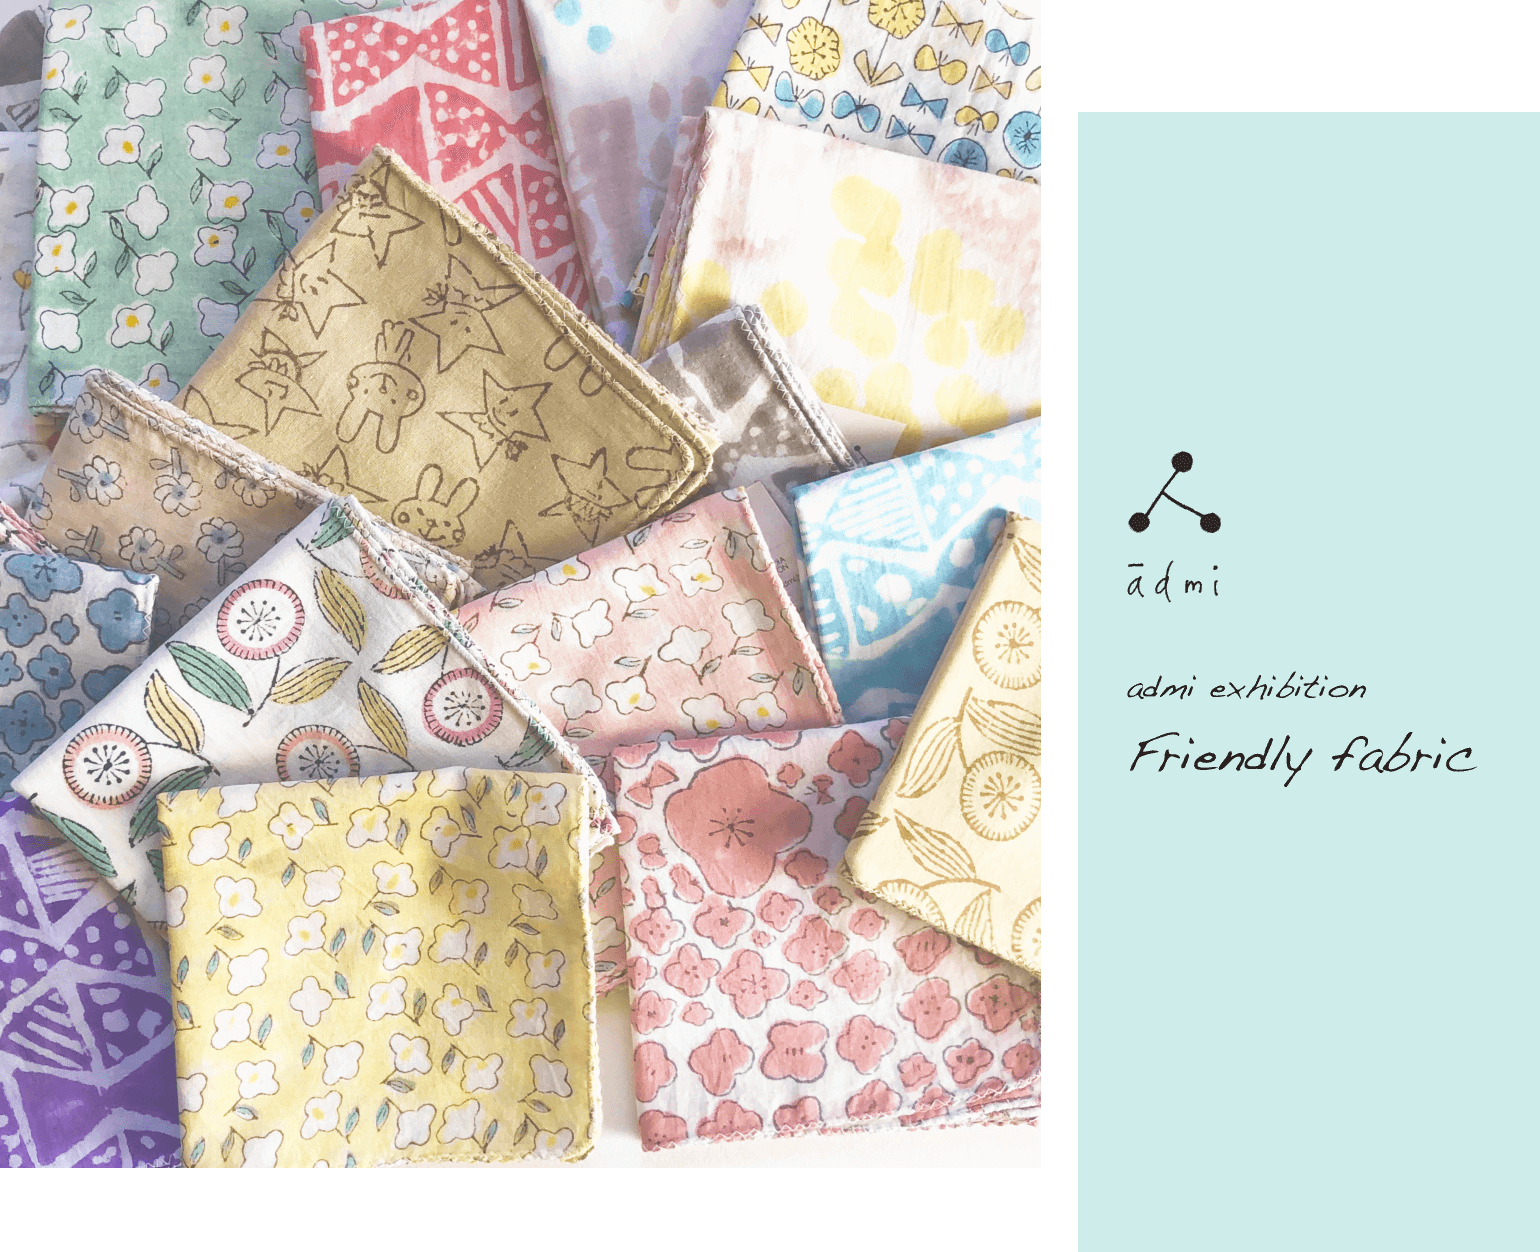 Colorful DM design with many patterns of handkerchiefs lined up